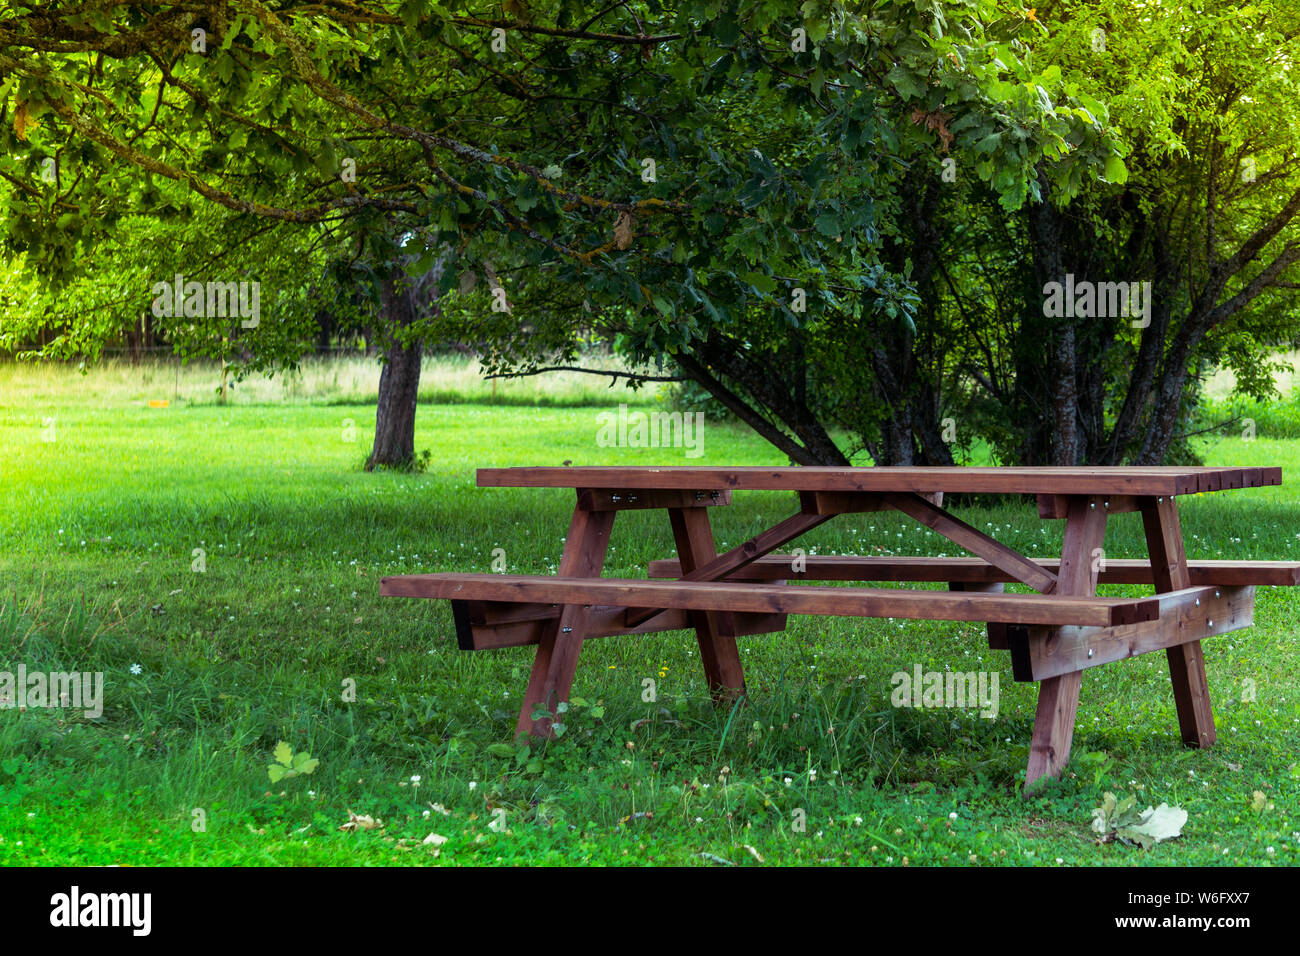 Bench With Table In Meadow Photos & Bench With Table In ...